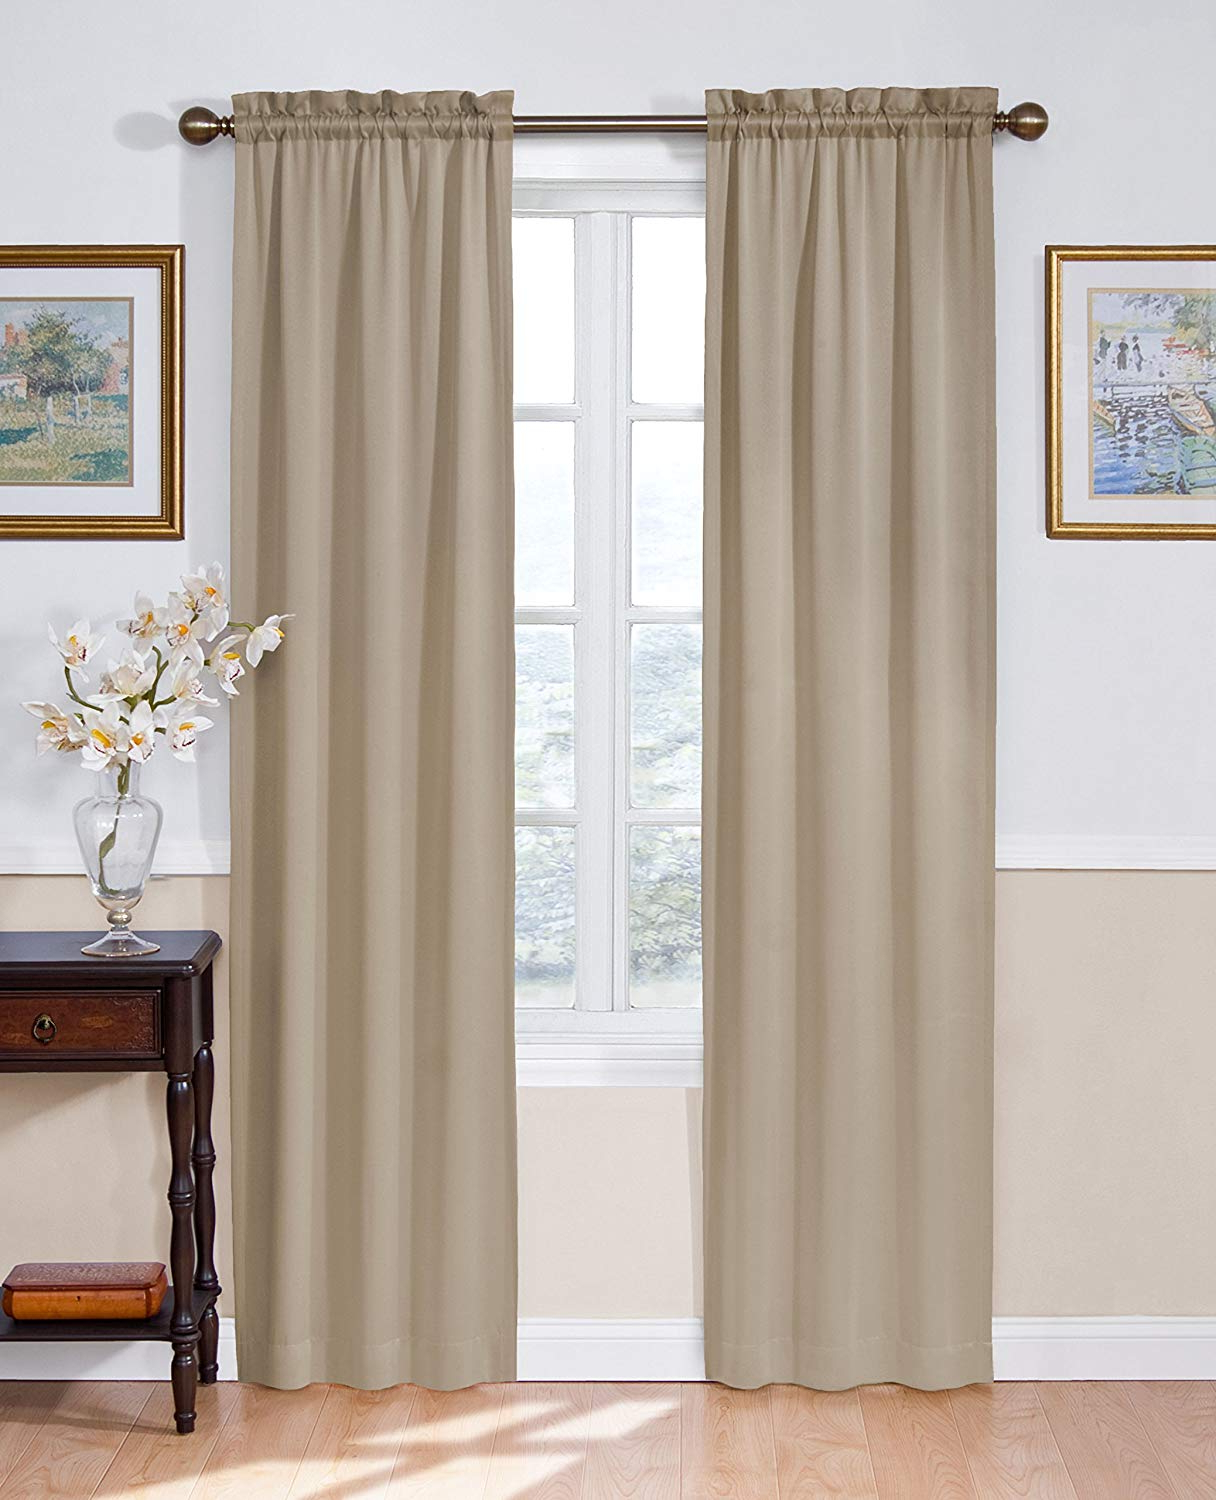 "2020 Eclipse Room Darkening Curtains For Bedroom – Solid Thermapanel 54"" X 84"" Thermal Insulated Single Panel Rod Pocket Light Blocking Curtains For Living For Eclipse Solid Thermapanel Room Darkening Single Panel (View 5 of 20)"